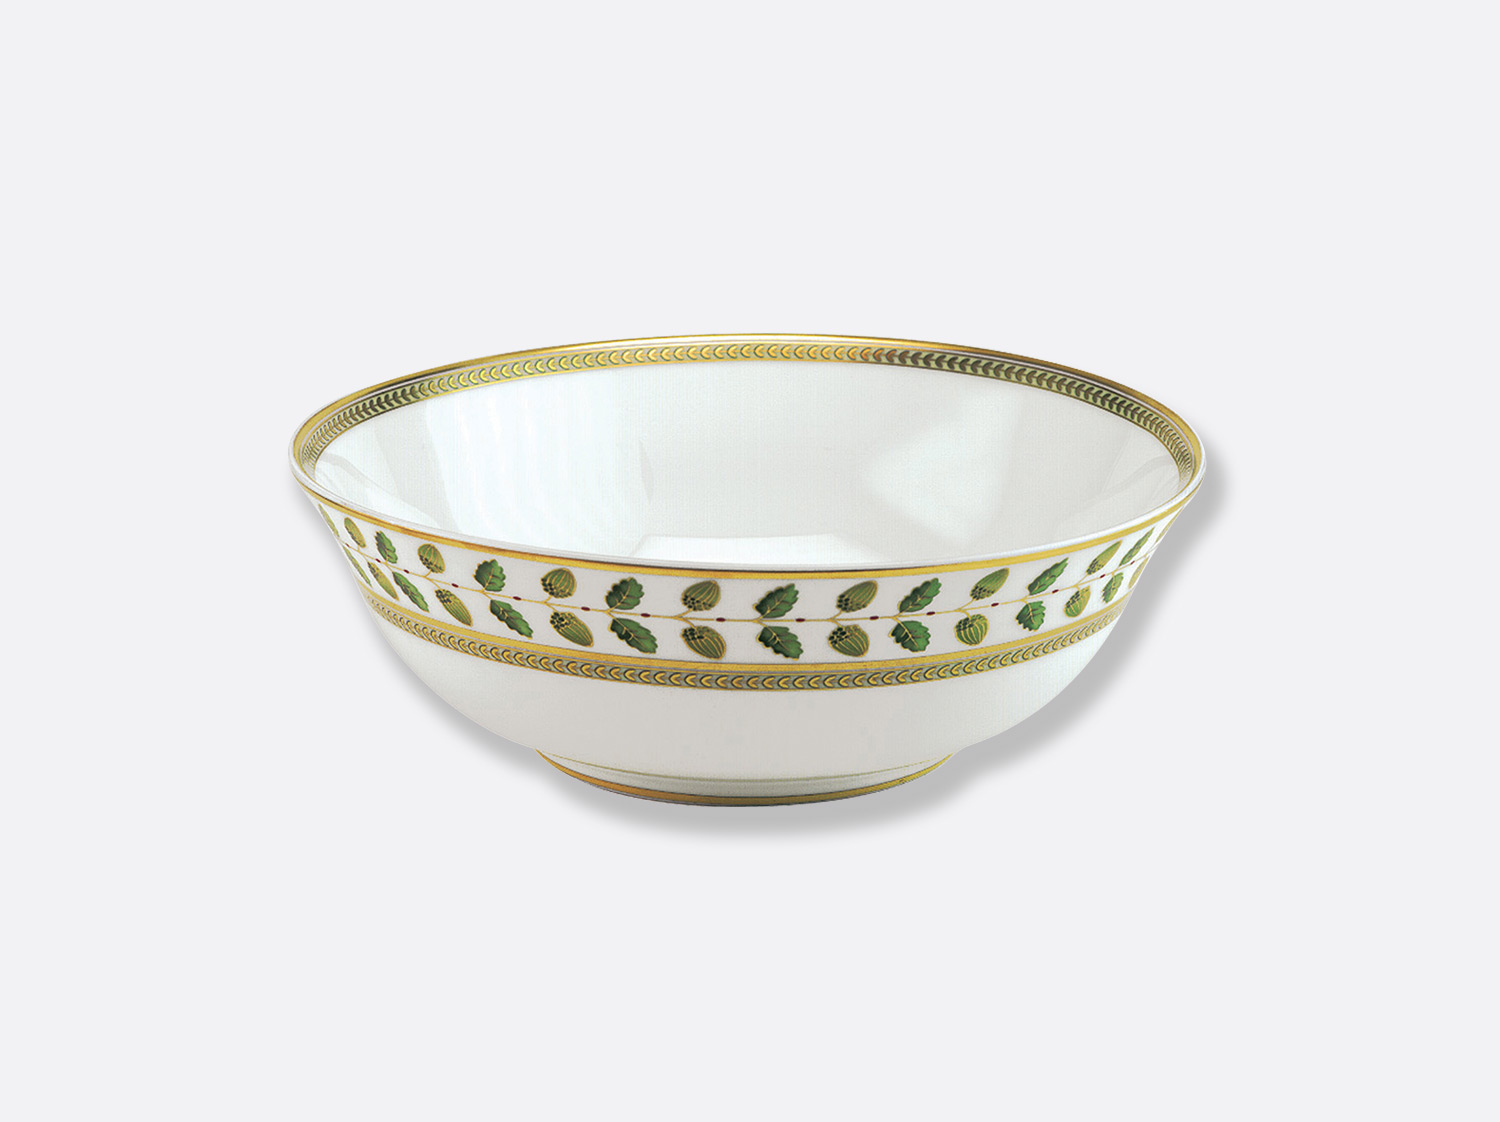 Saladier 25 cm 1,7 L en porcelaine de la collection Constance Bernardaud